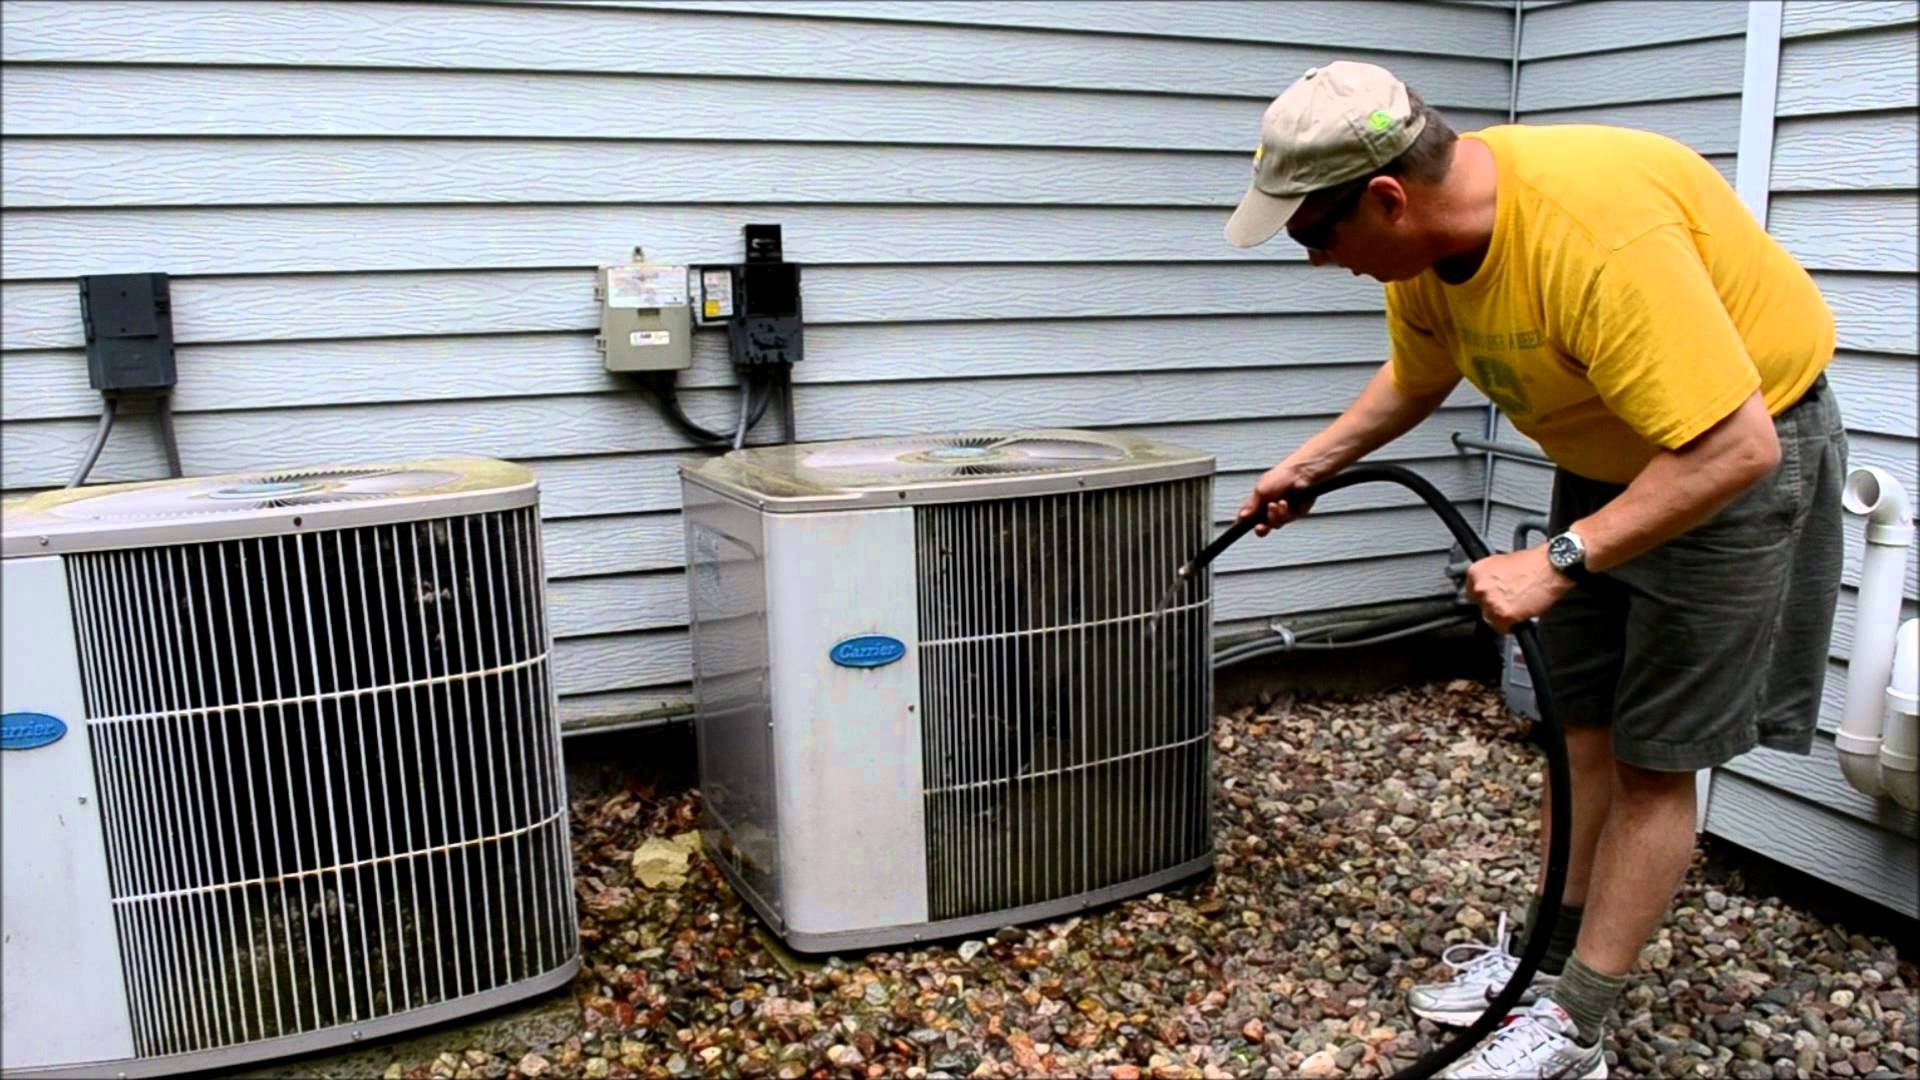 Cleaning air conditioner coils how to video clean air